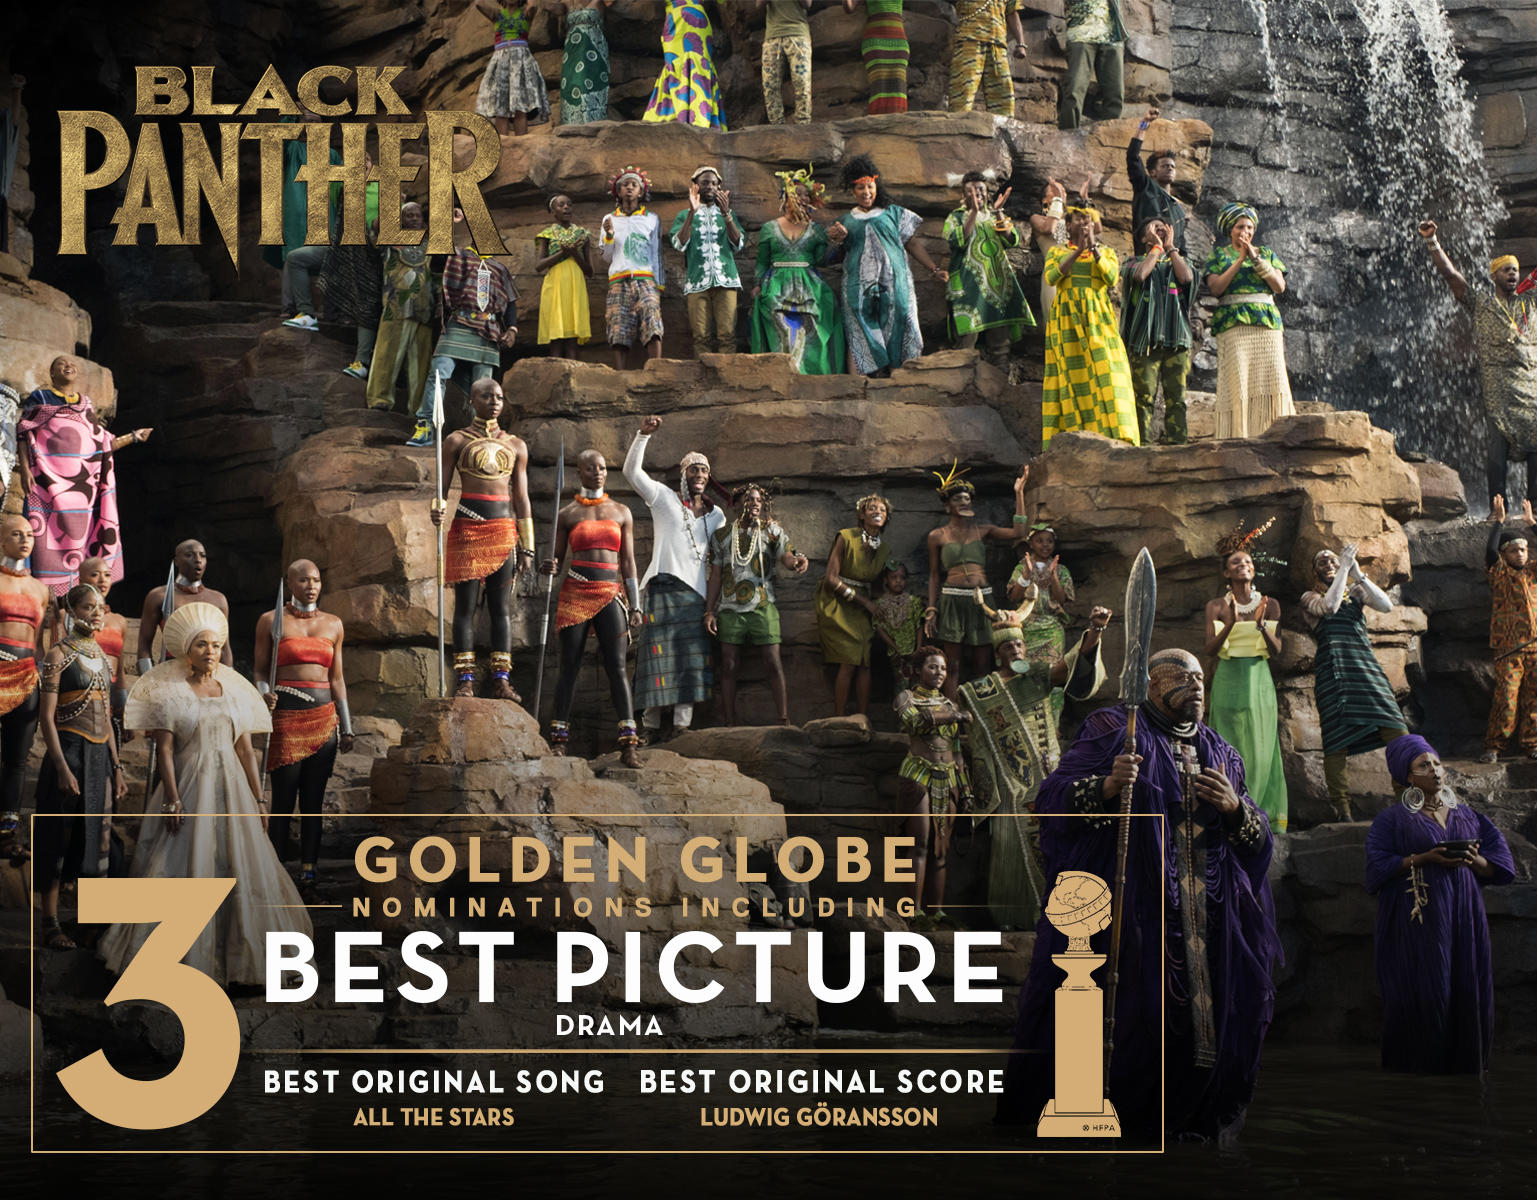 Marvel Studios' Black Panther has been nominated for 3 Golden Globes